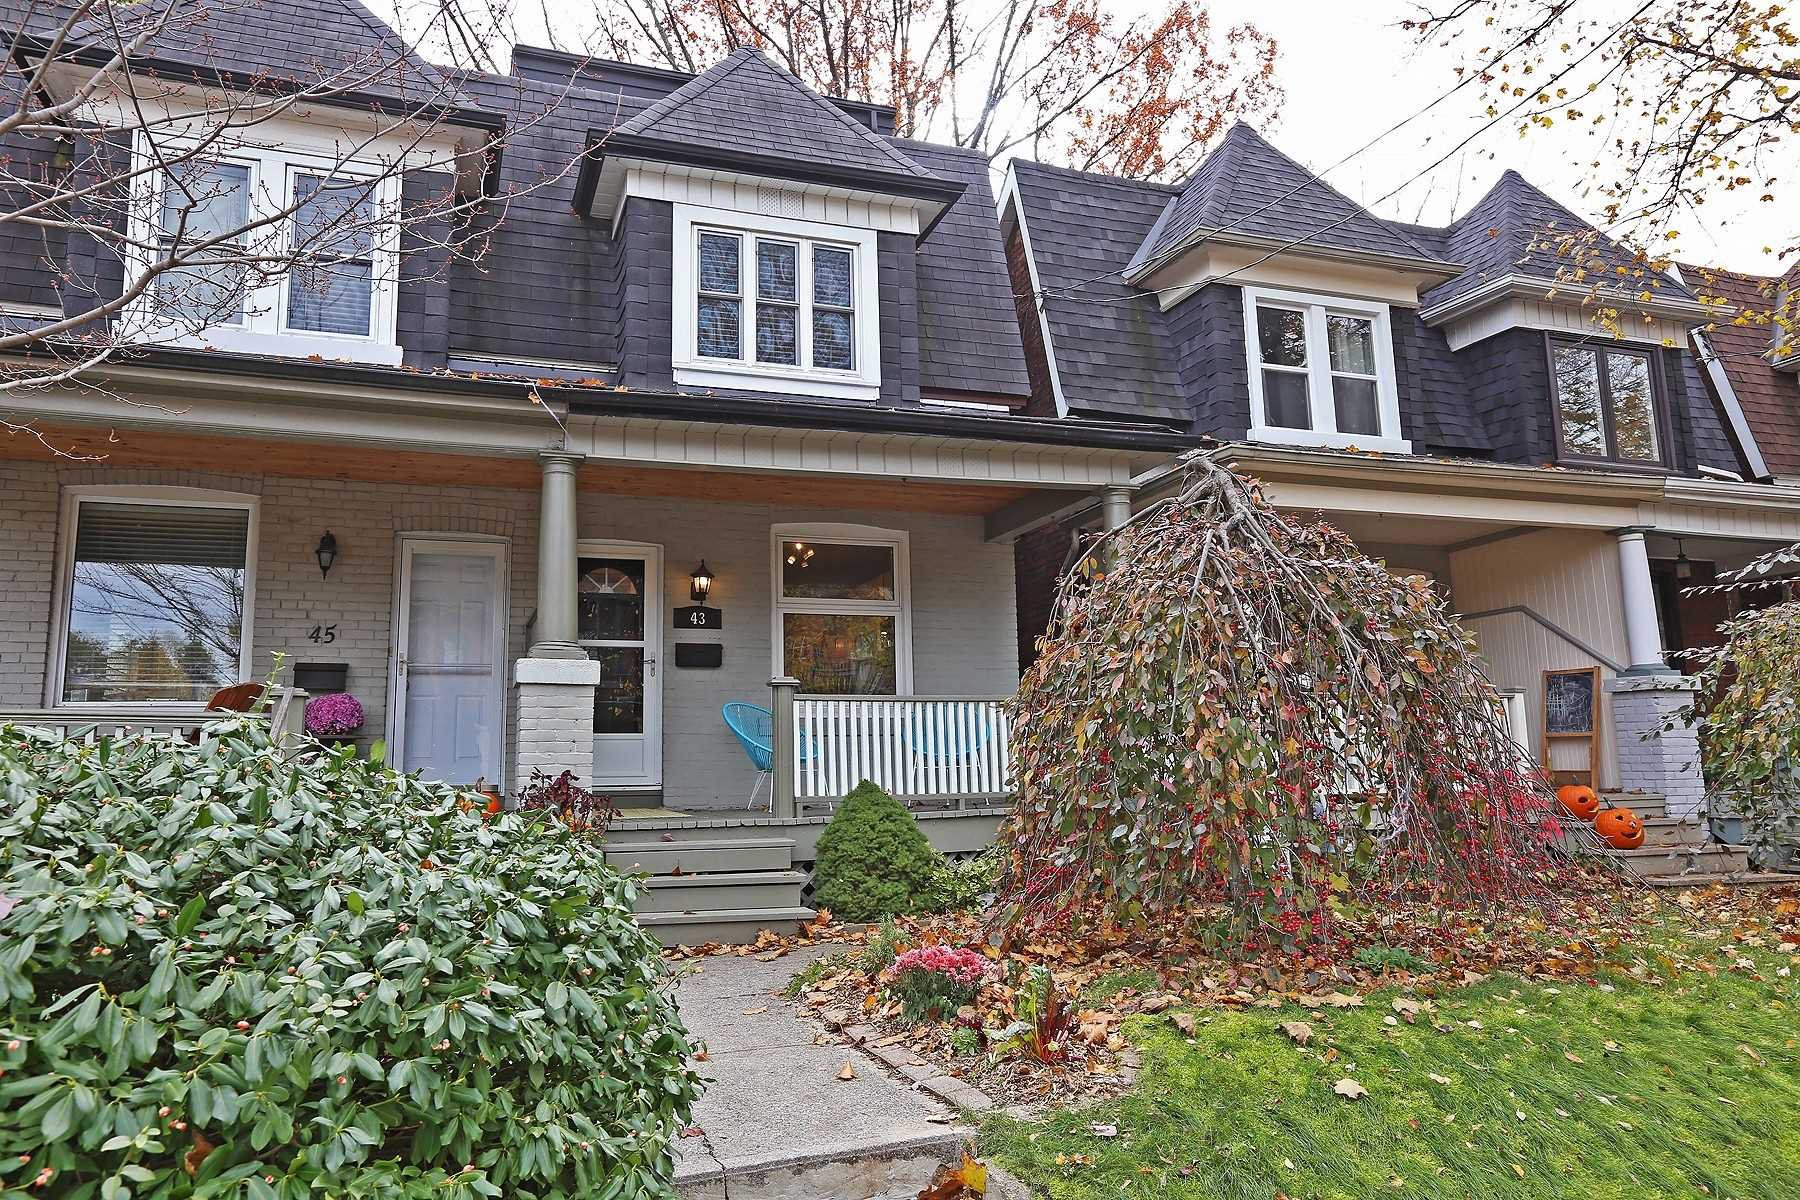 Main Photo: 43 Strathcona Ave in Toronto: North Riverdale Freehold for sale (Toronto E01)  : MLS®# E4628375